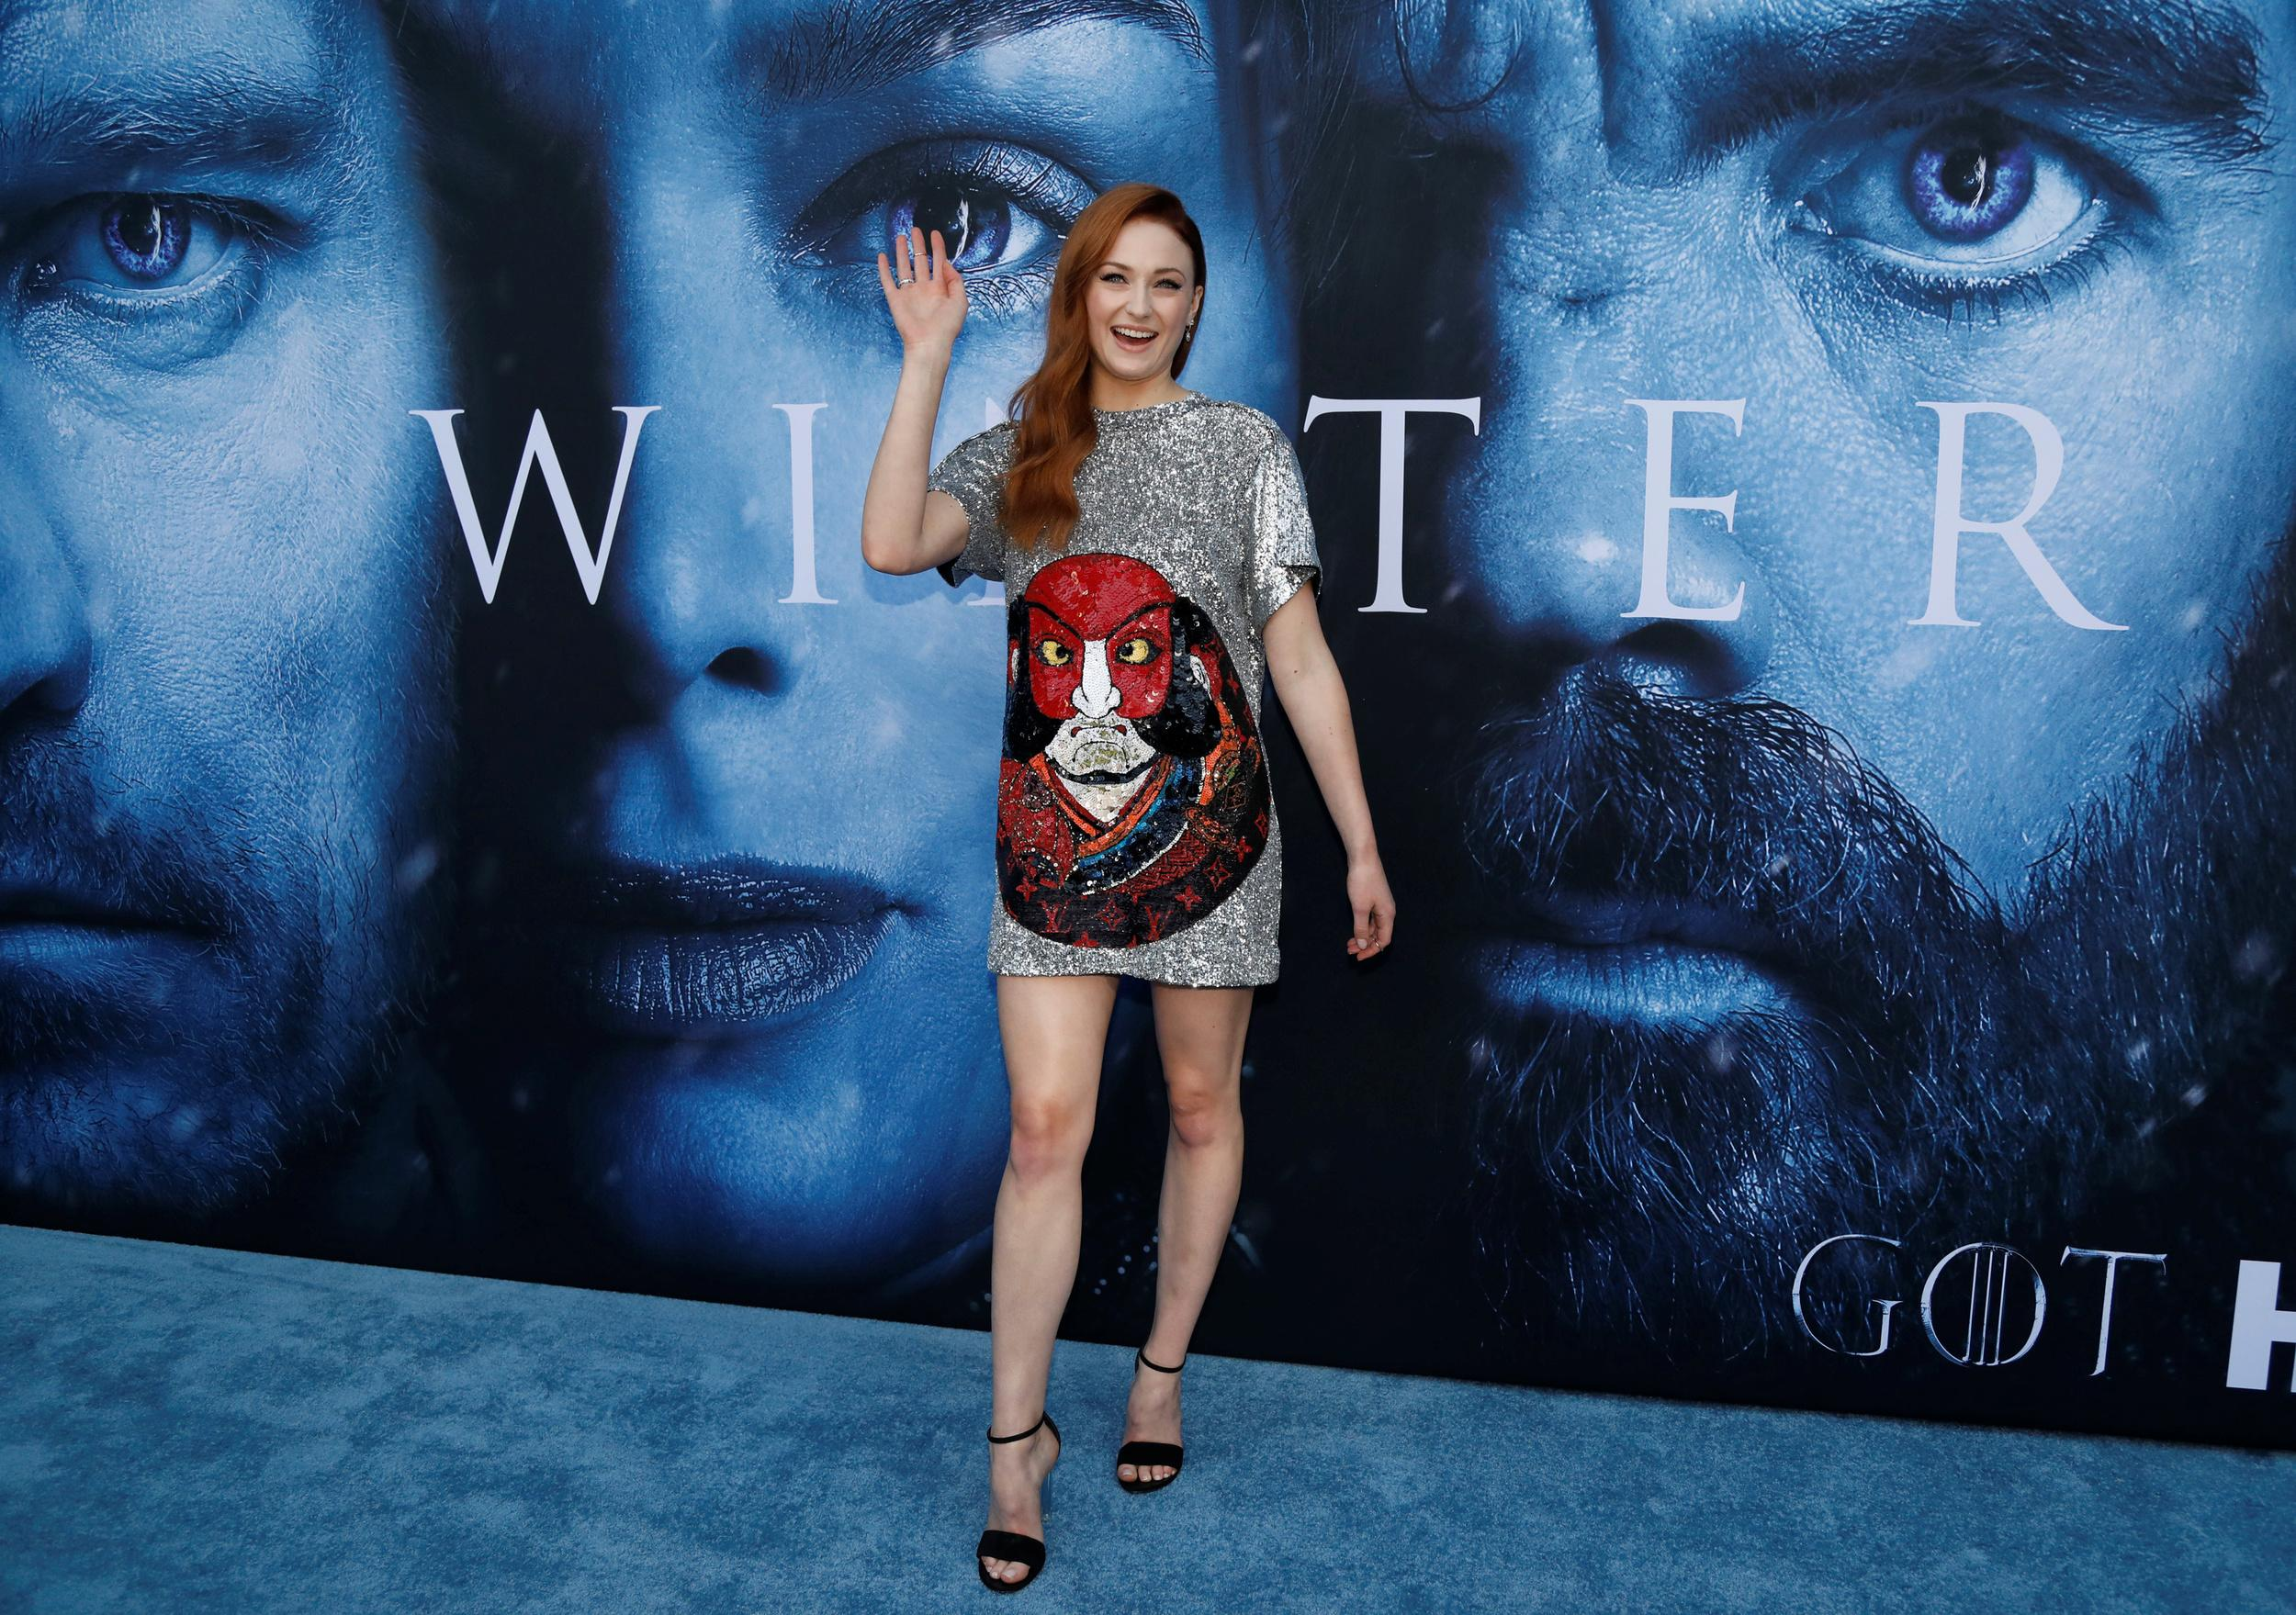 """Cast member Sophie Turner poses at a premiere for season 7 of the television series """"Game of Thrones"""" in Los Angeles, California, U.S., July 12, 2017. REUTERS/Mario Anzuoni"""